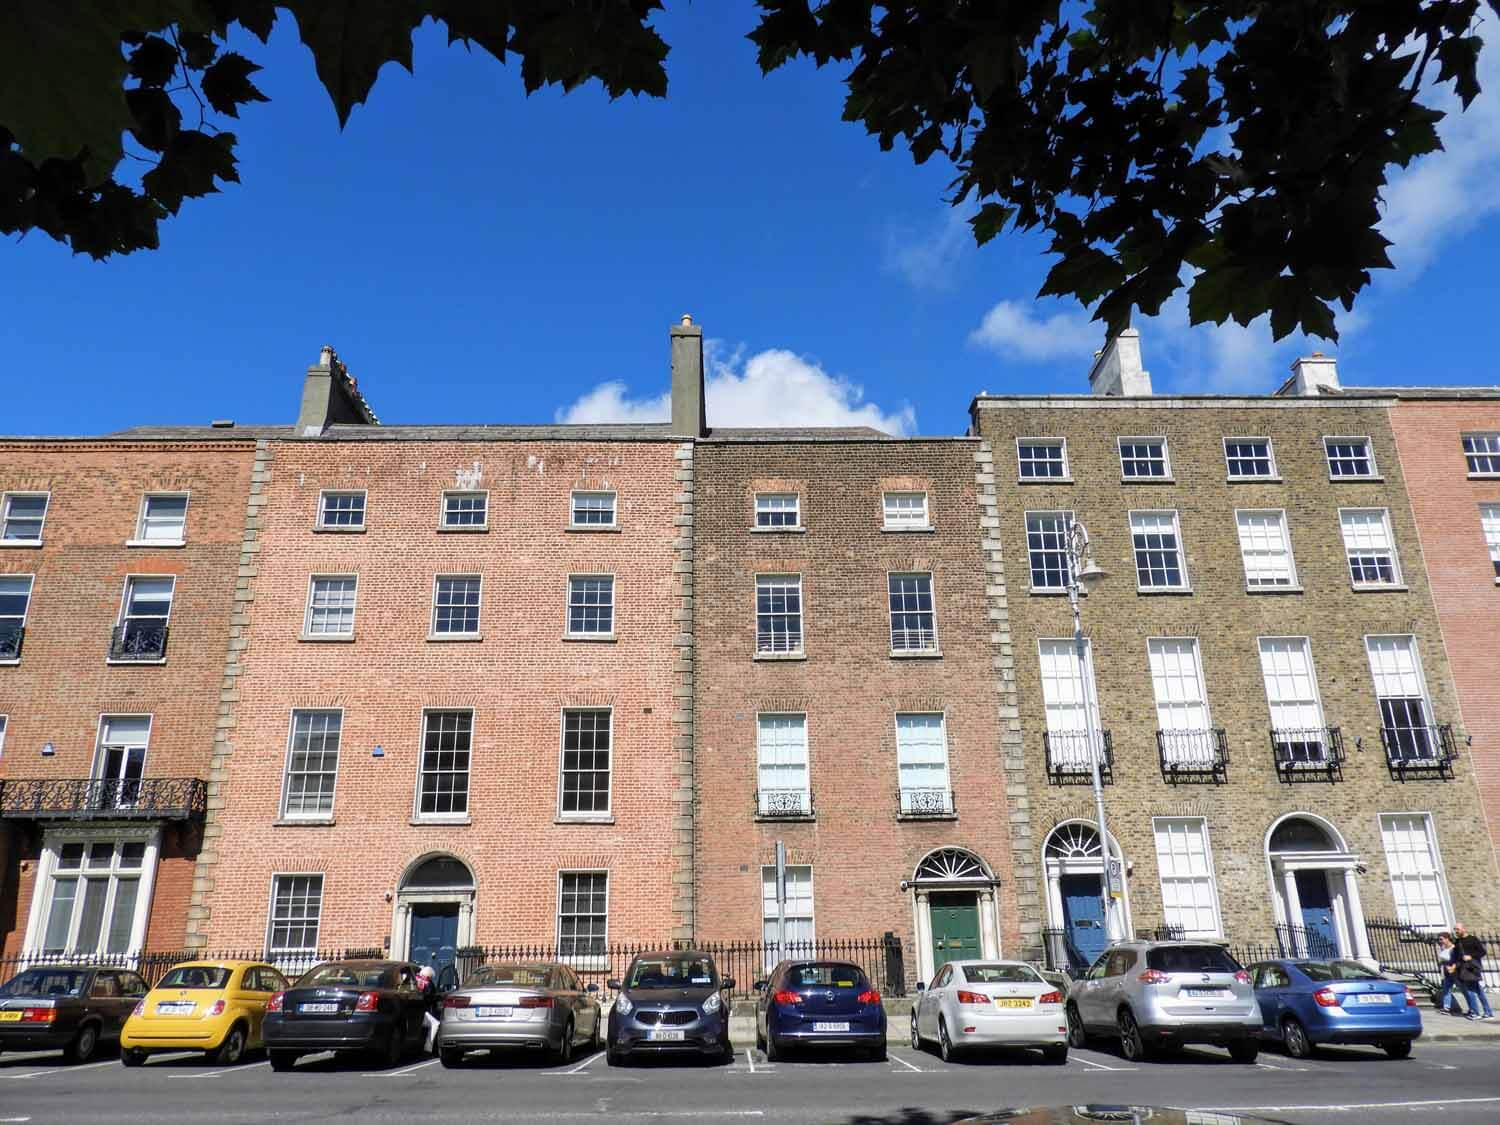 ireland-dublin-brick-row-houses.jpg